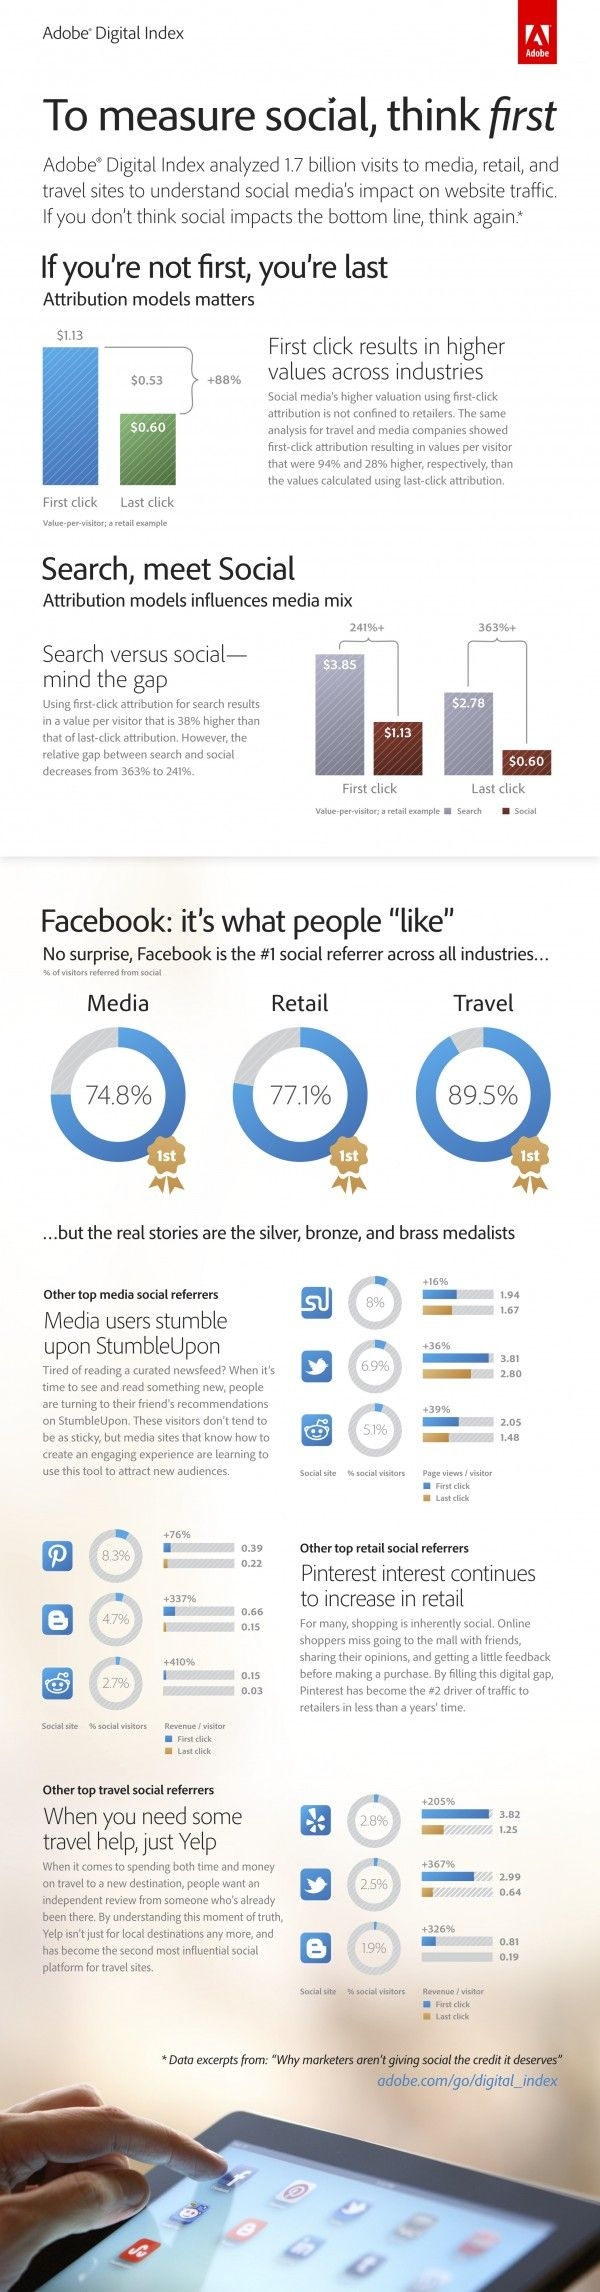 """To Measure #Social, Think First. How many people like things that have to do with retail, travel, or media. """"If you're not first, you're last"""". Where your webpage ranks. 6/10"""